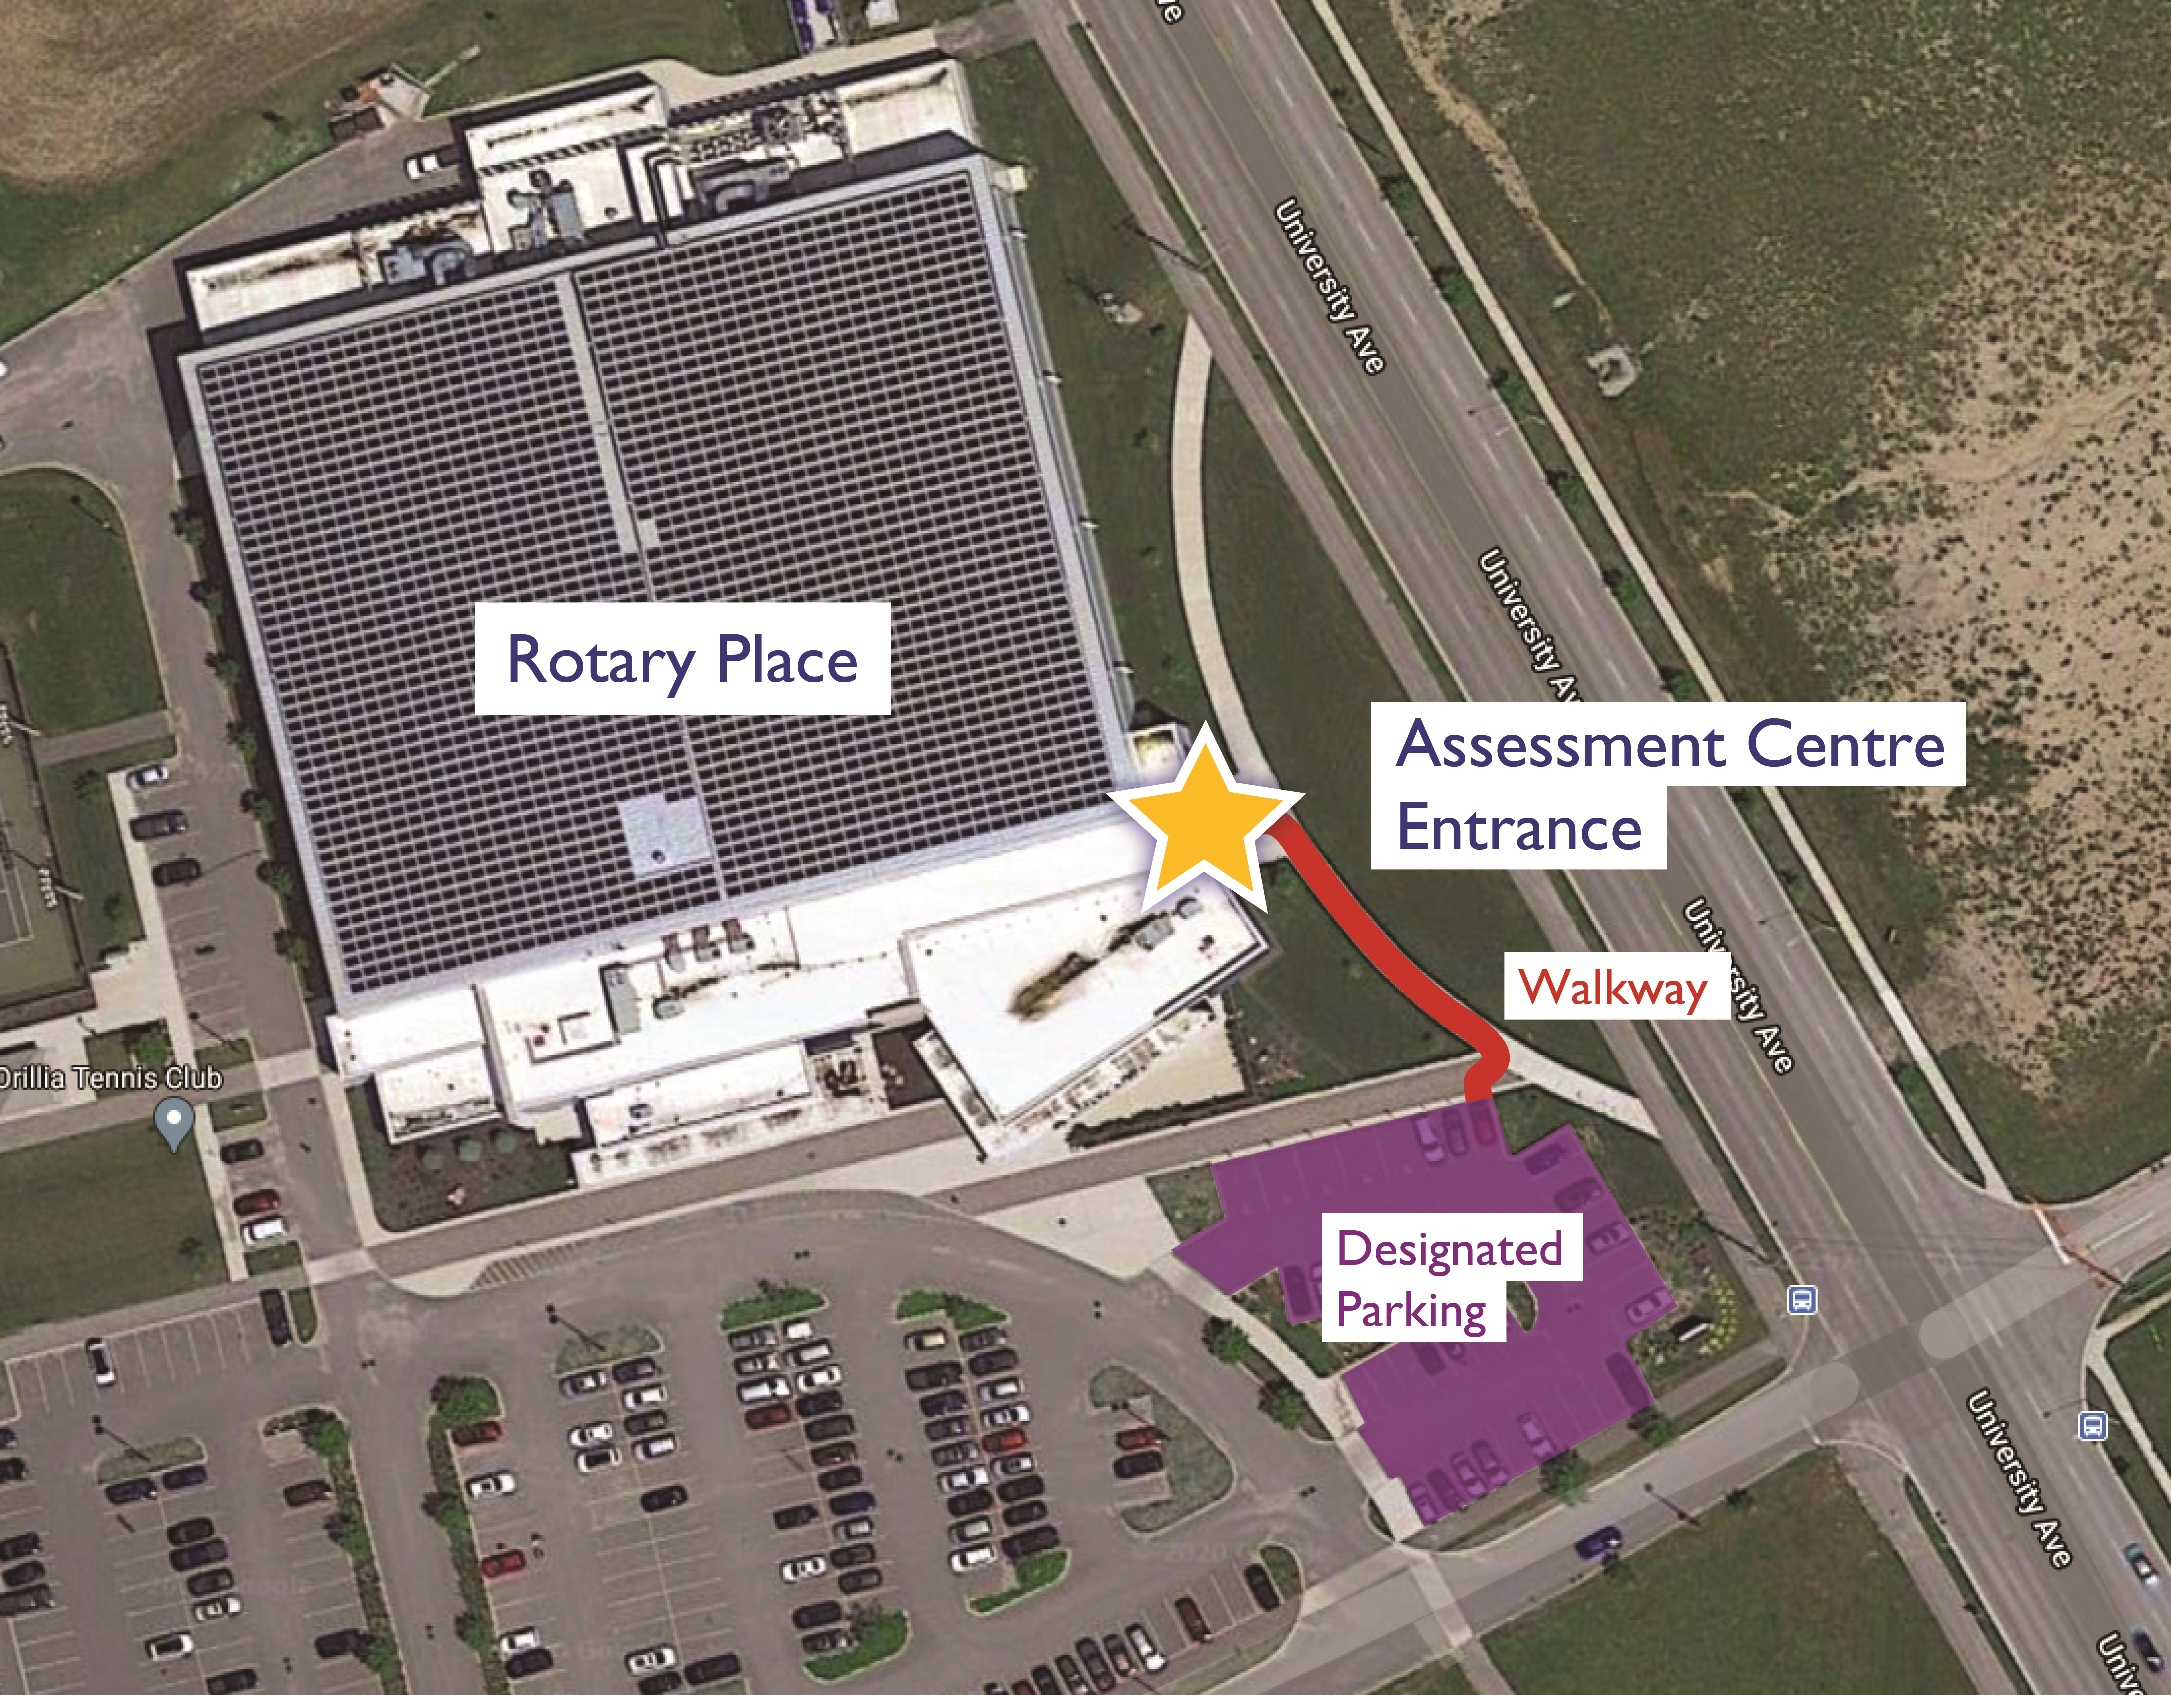 Rotary Place Assessment Centre Map